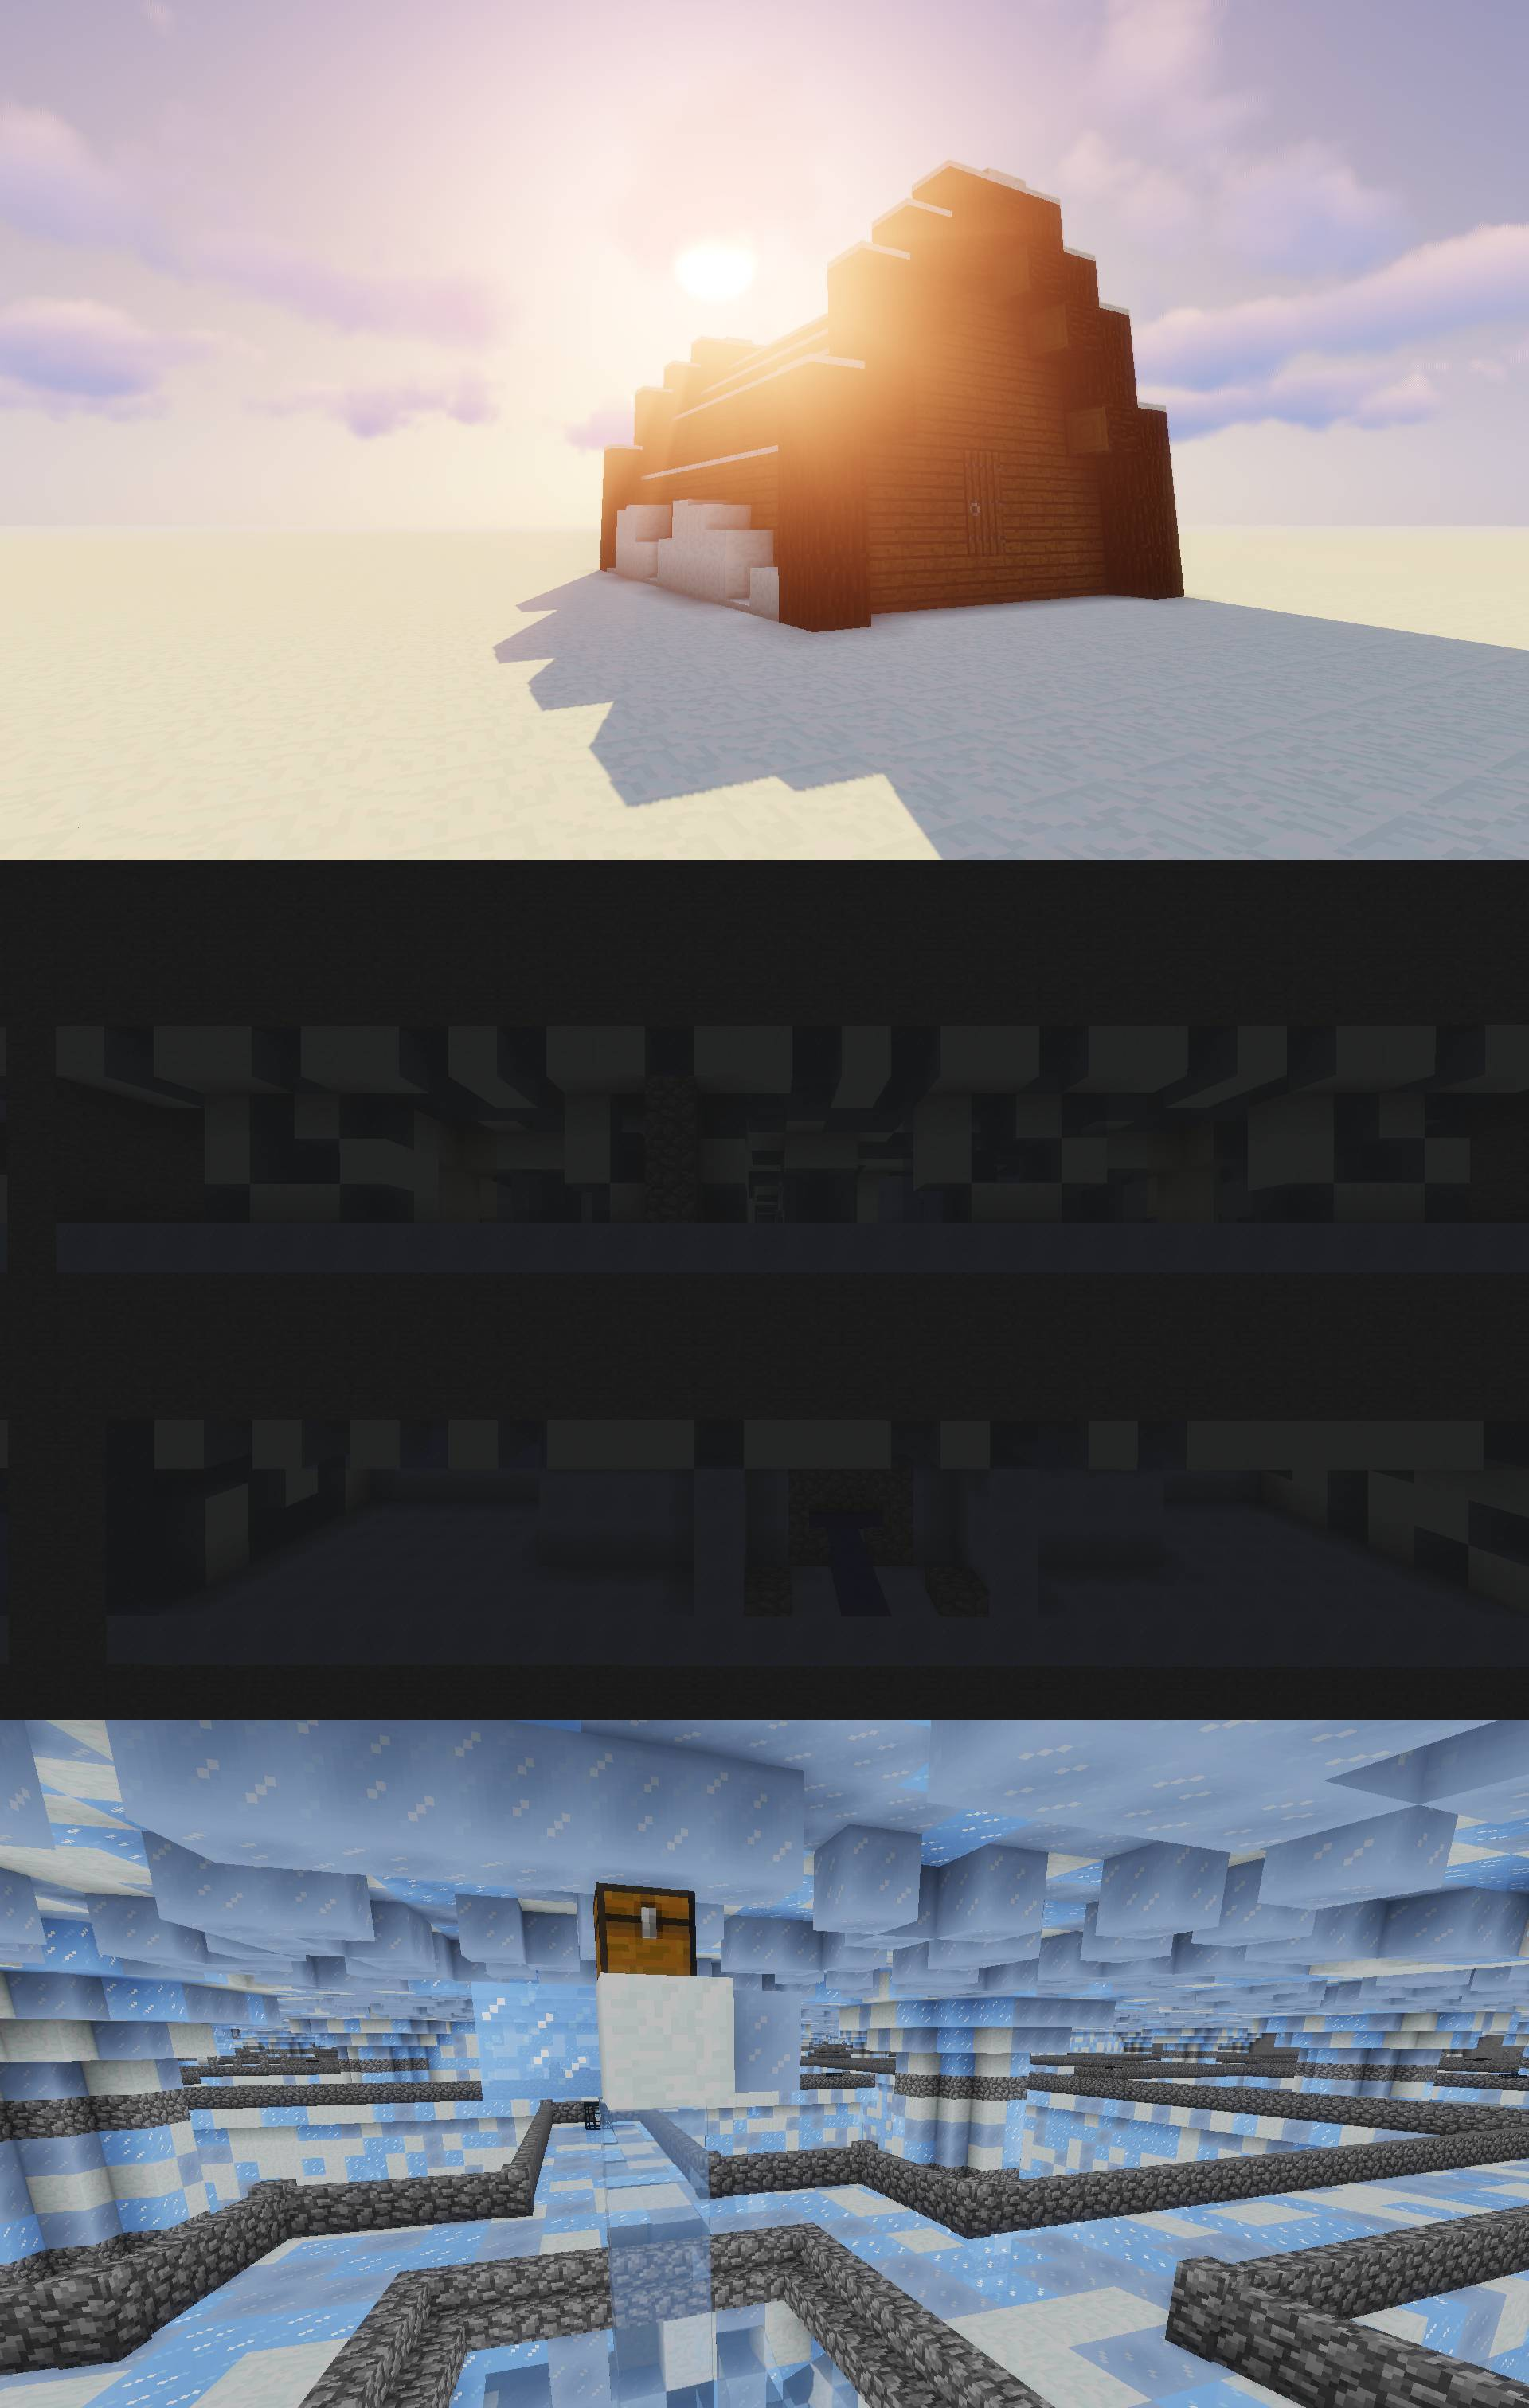 Wesley_s Roguelike Dungeons mod for minecraft 24